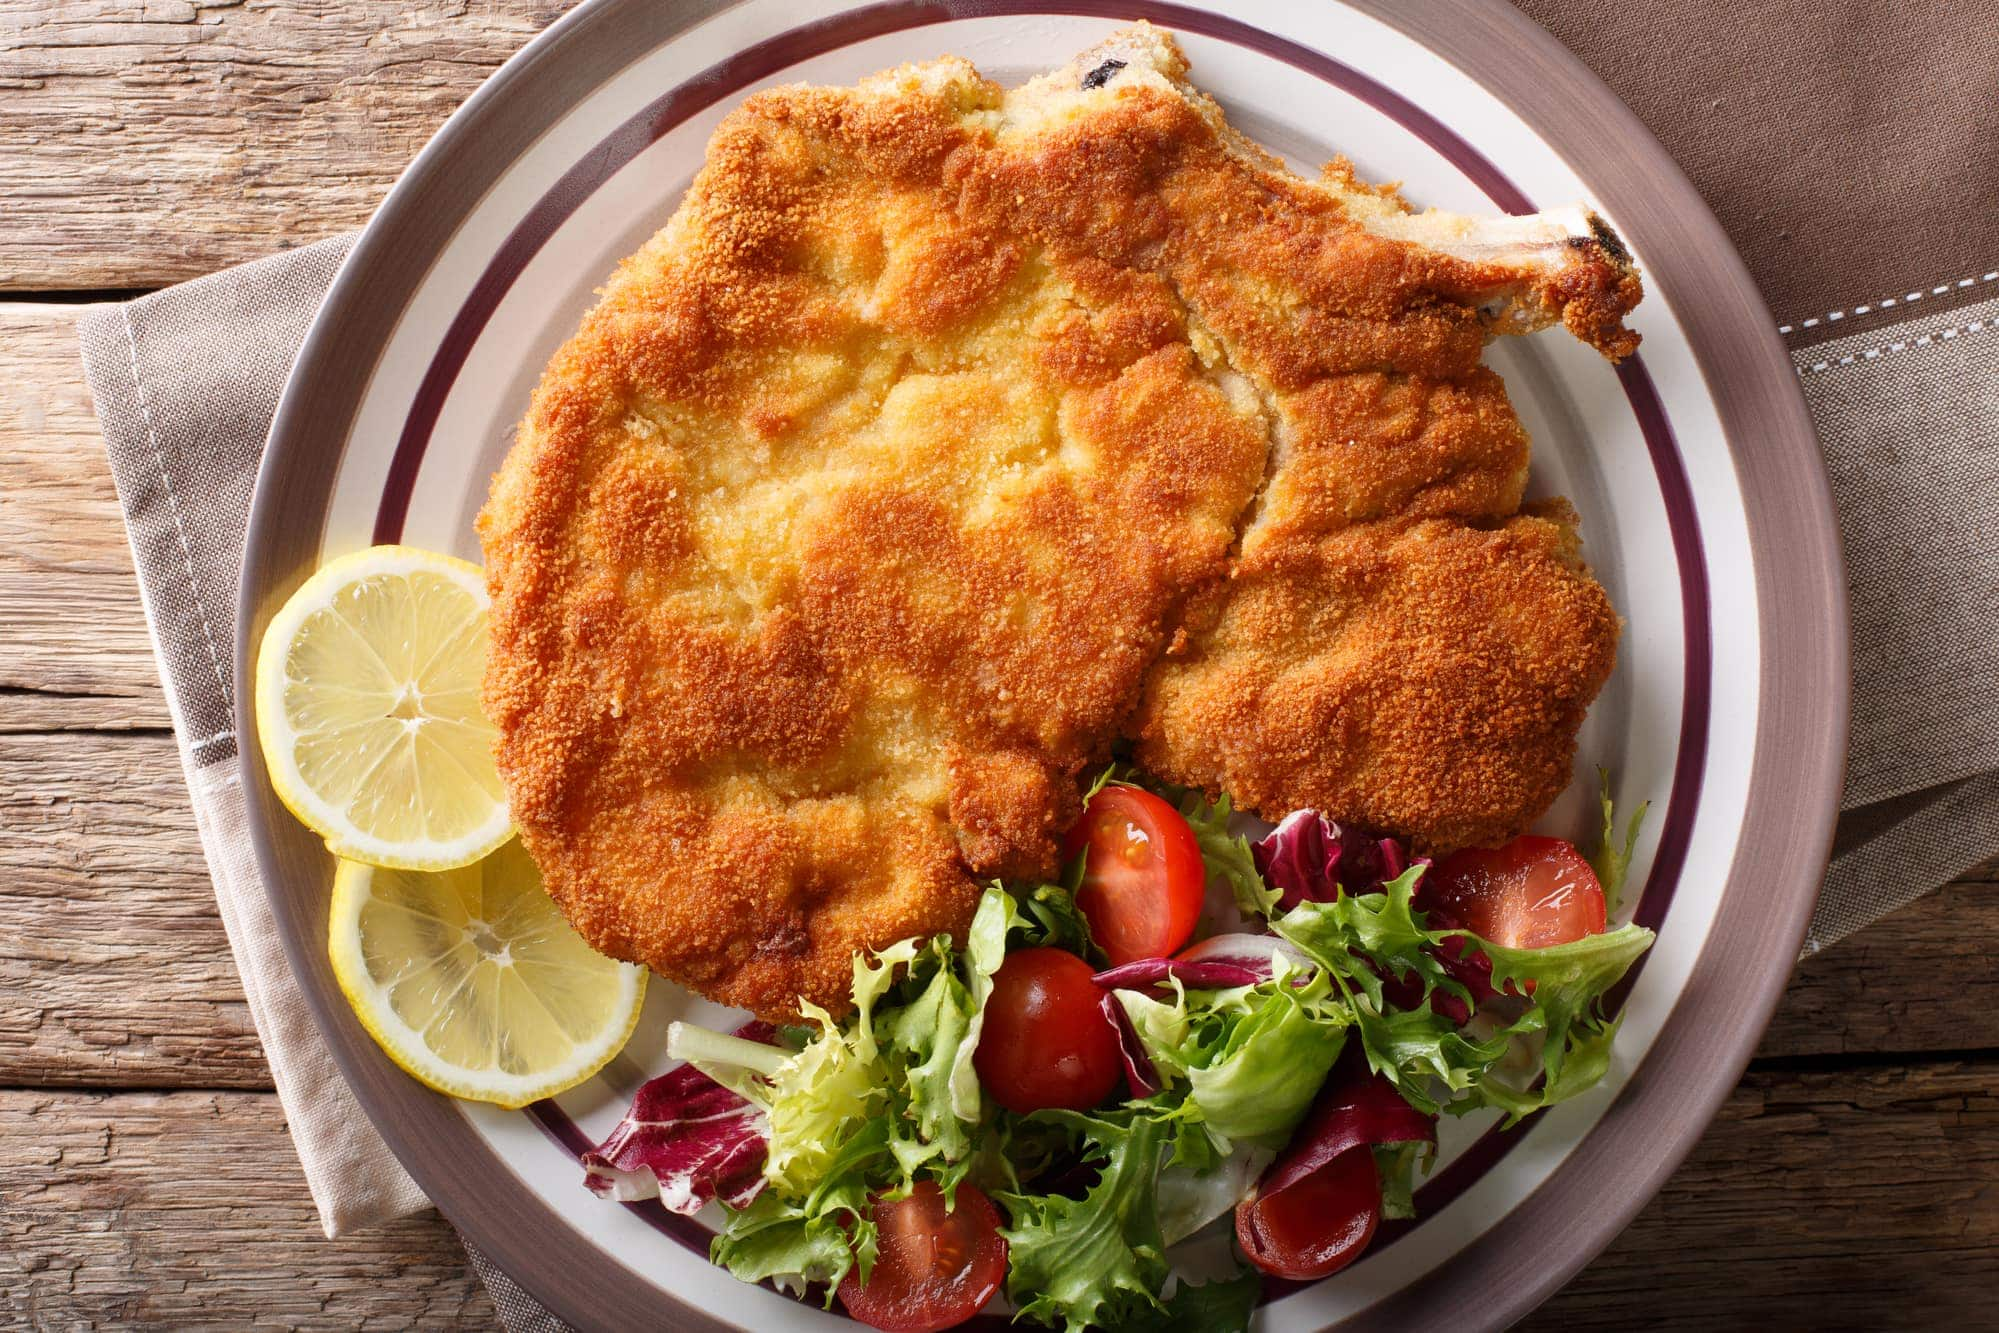 Authentic Veal milanese (cotoletta alla milanese)